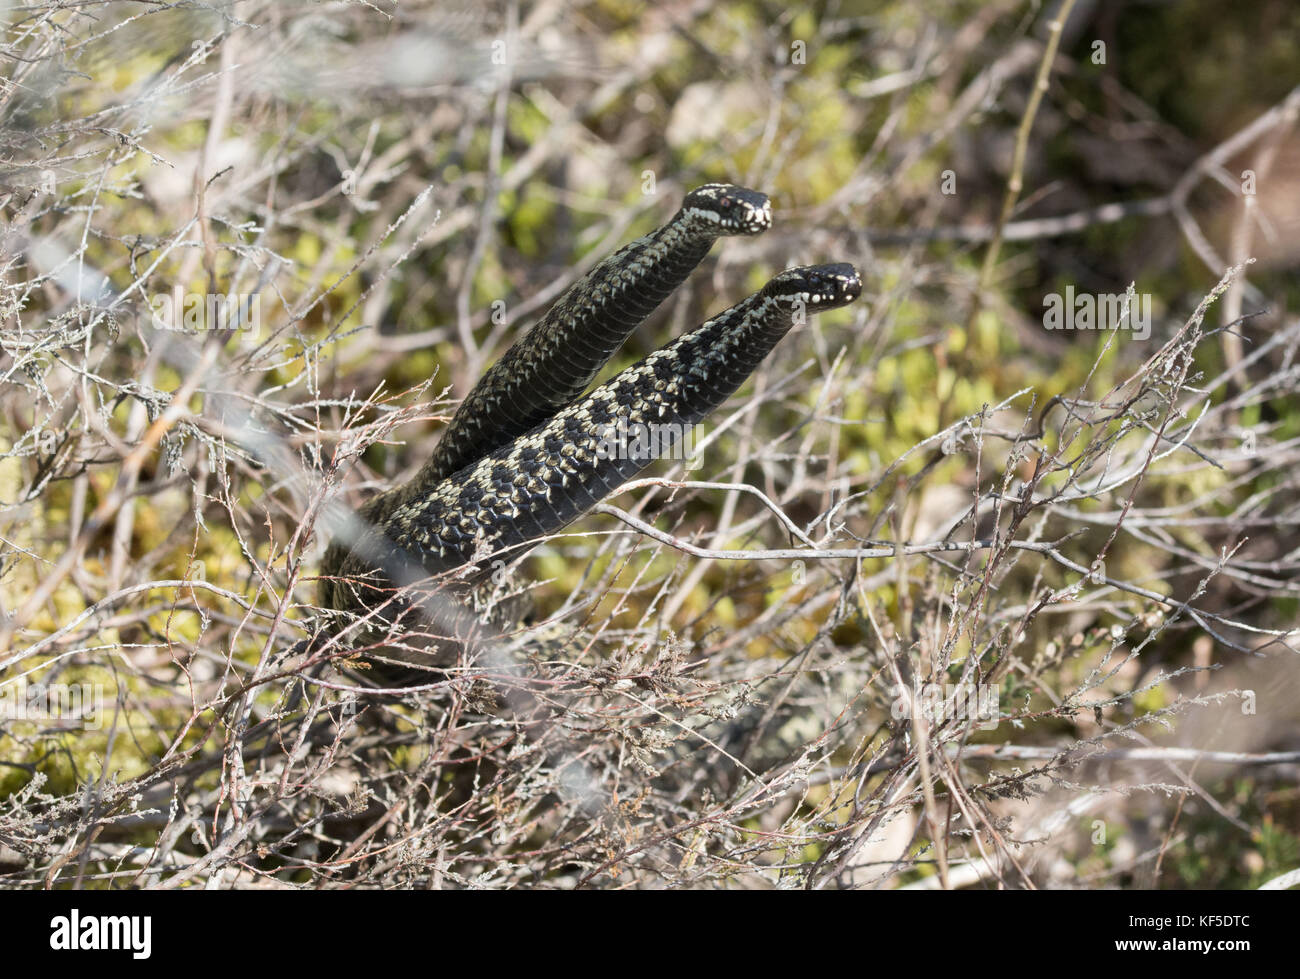 Two male adders (Vipera berus) fighting (dancing) for mating rights during the breeding season. Animal humour, humor - Stock Image